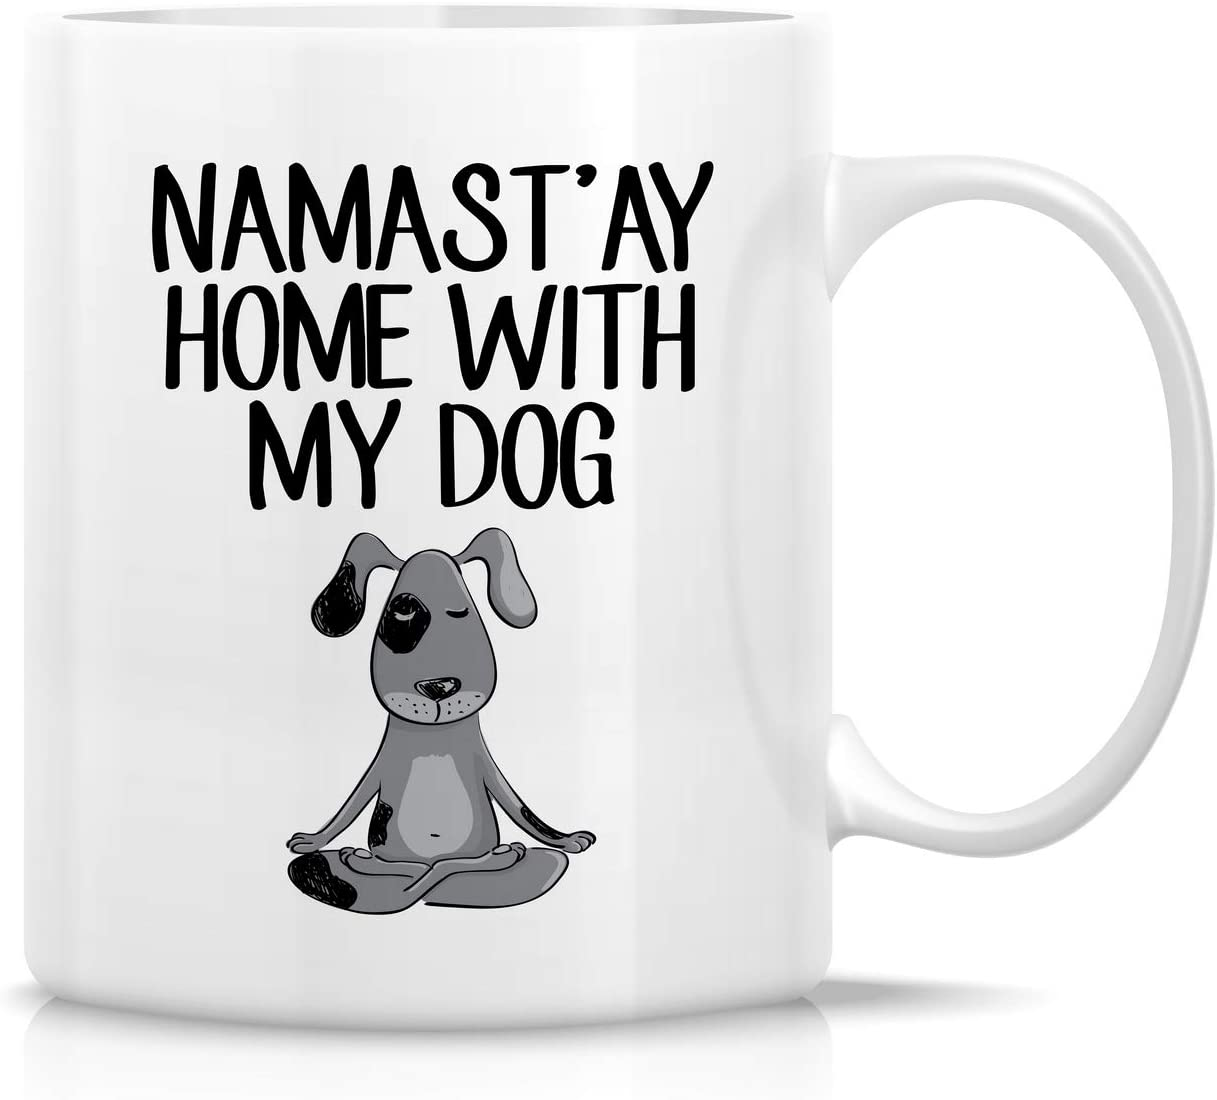 Retreez Funny Mug - Namaste Namastay Home with My Dog Dogs Lover Meditation Yoga 11 Oz Ceramic Coffee Mugs - Funny, Sarcasm, Motivational, Inspirational birthday gifts for friends, coworkers, siblings